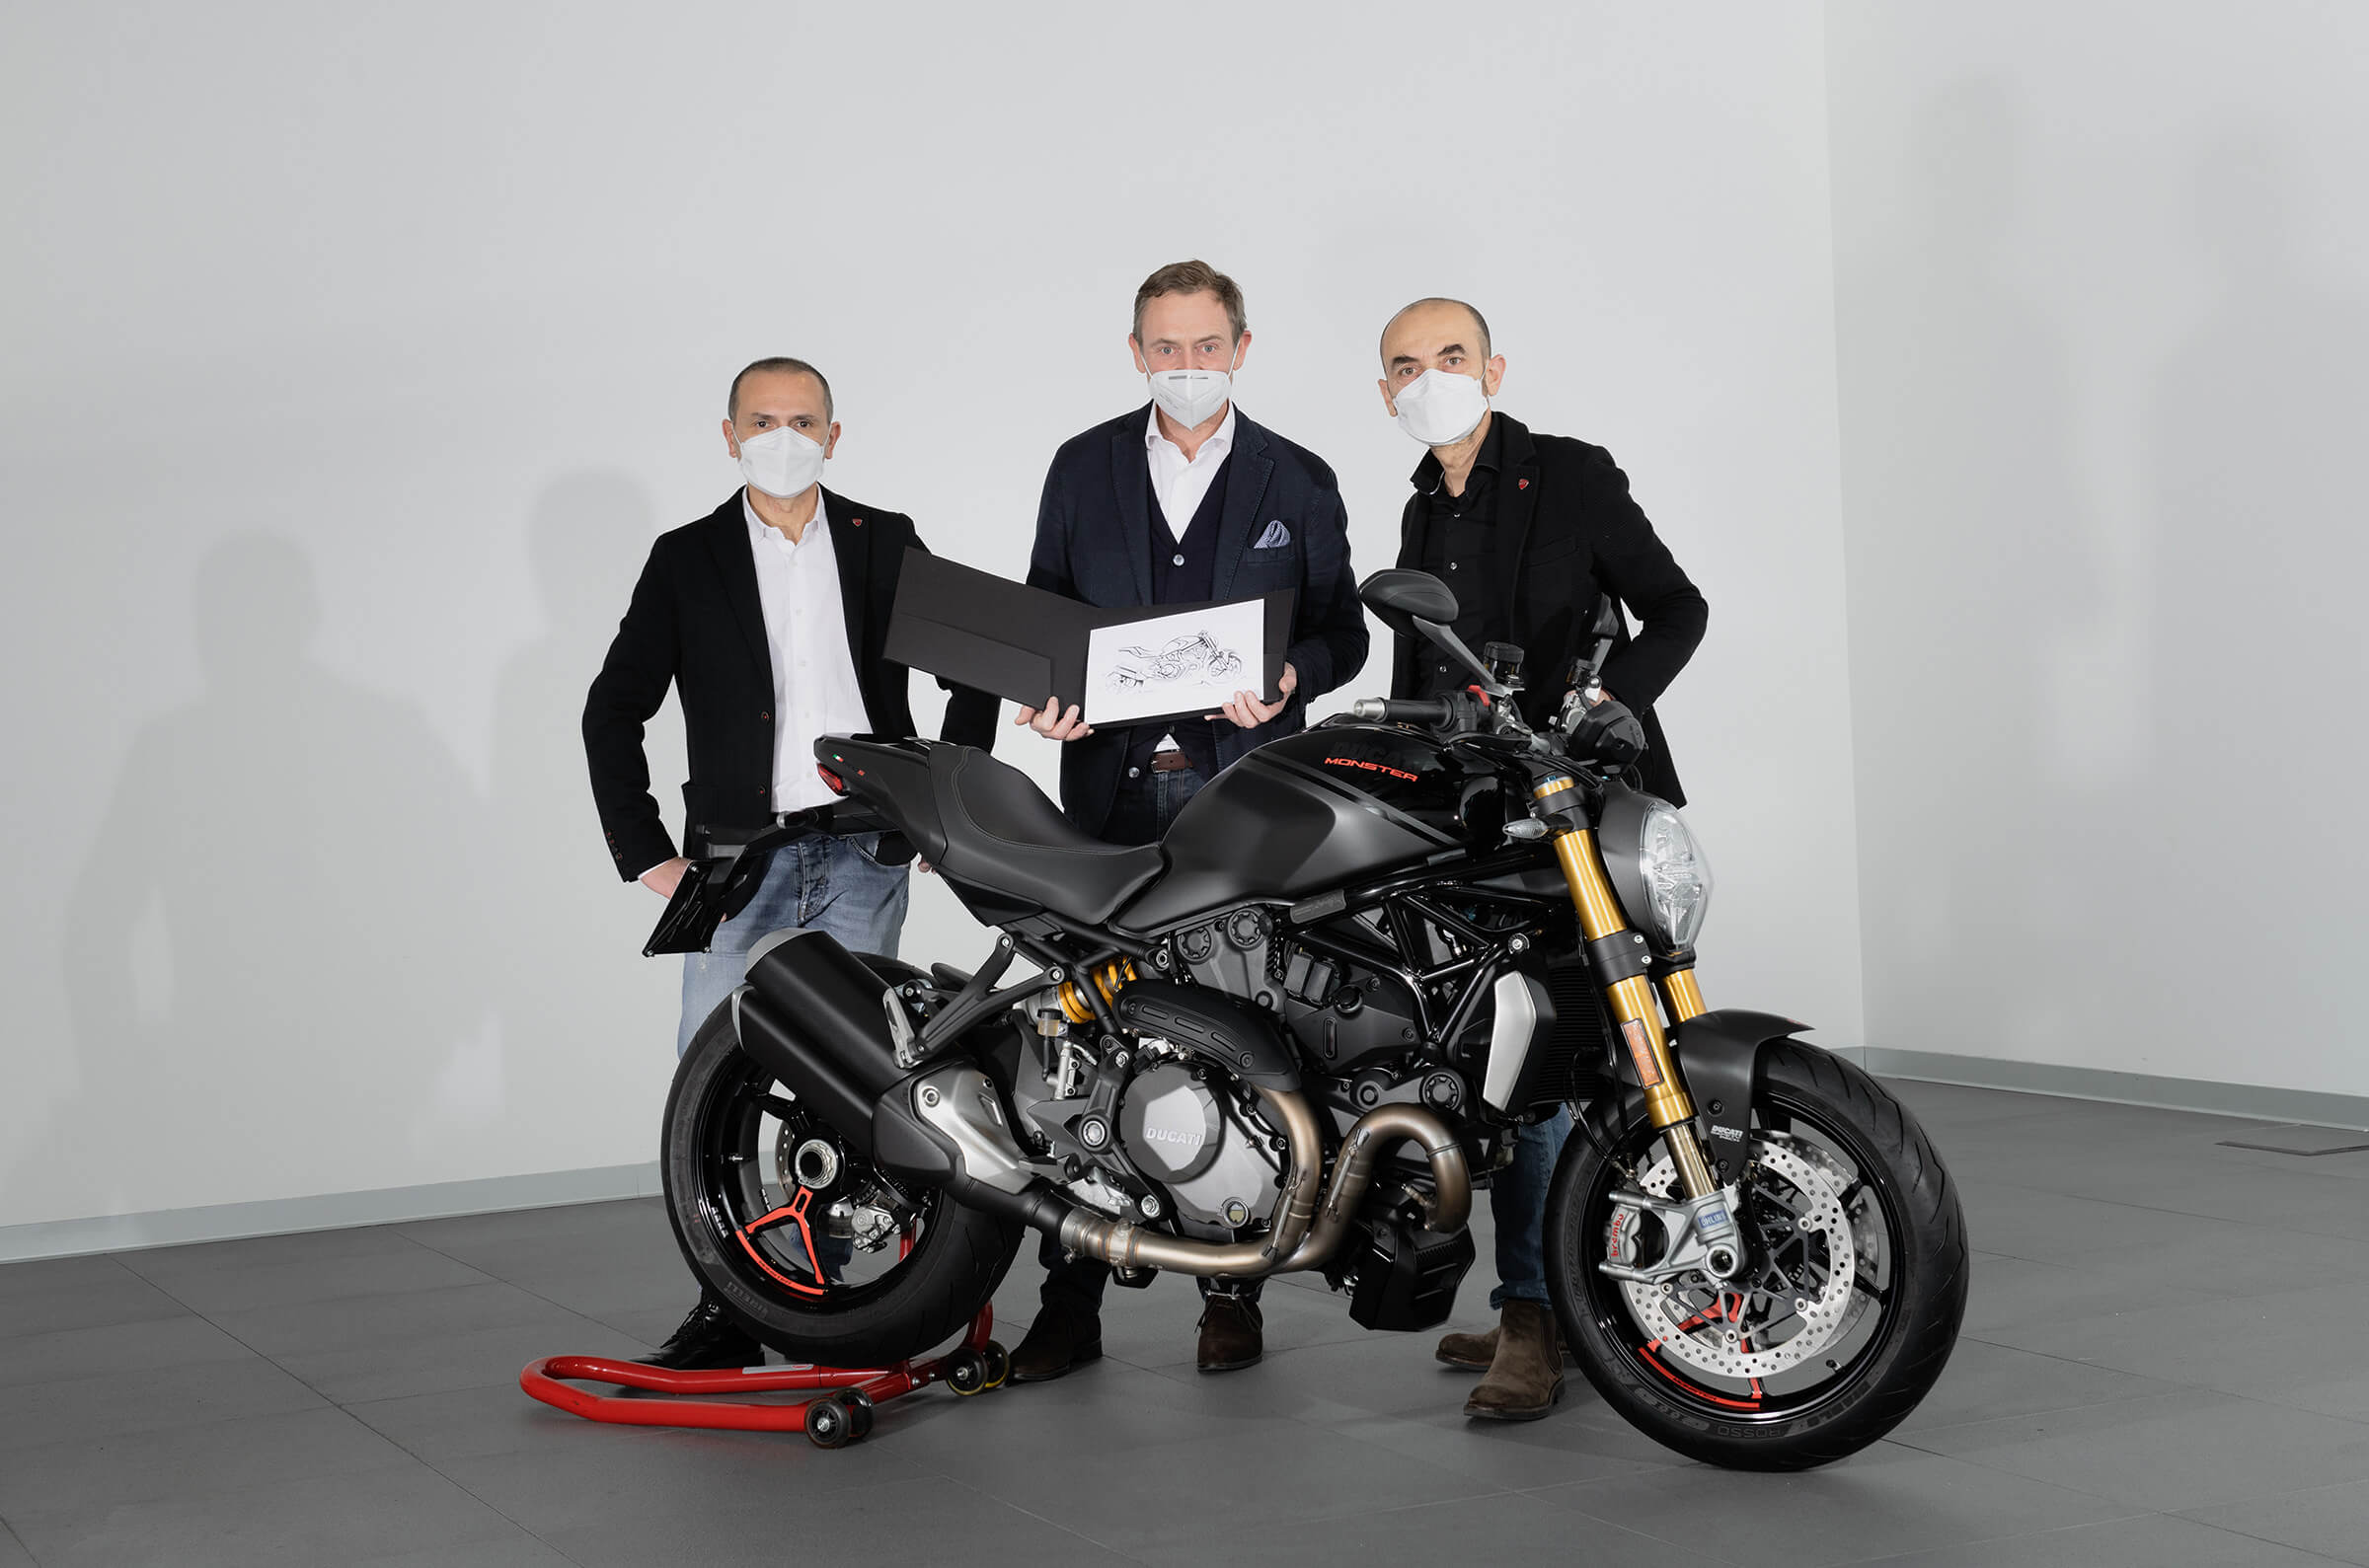 DUCATI MONSTER A.FERRARESI F. DE ROSE C.DOMENICALI